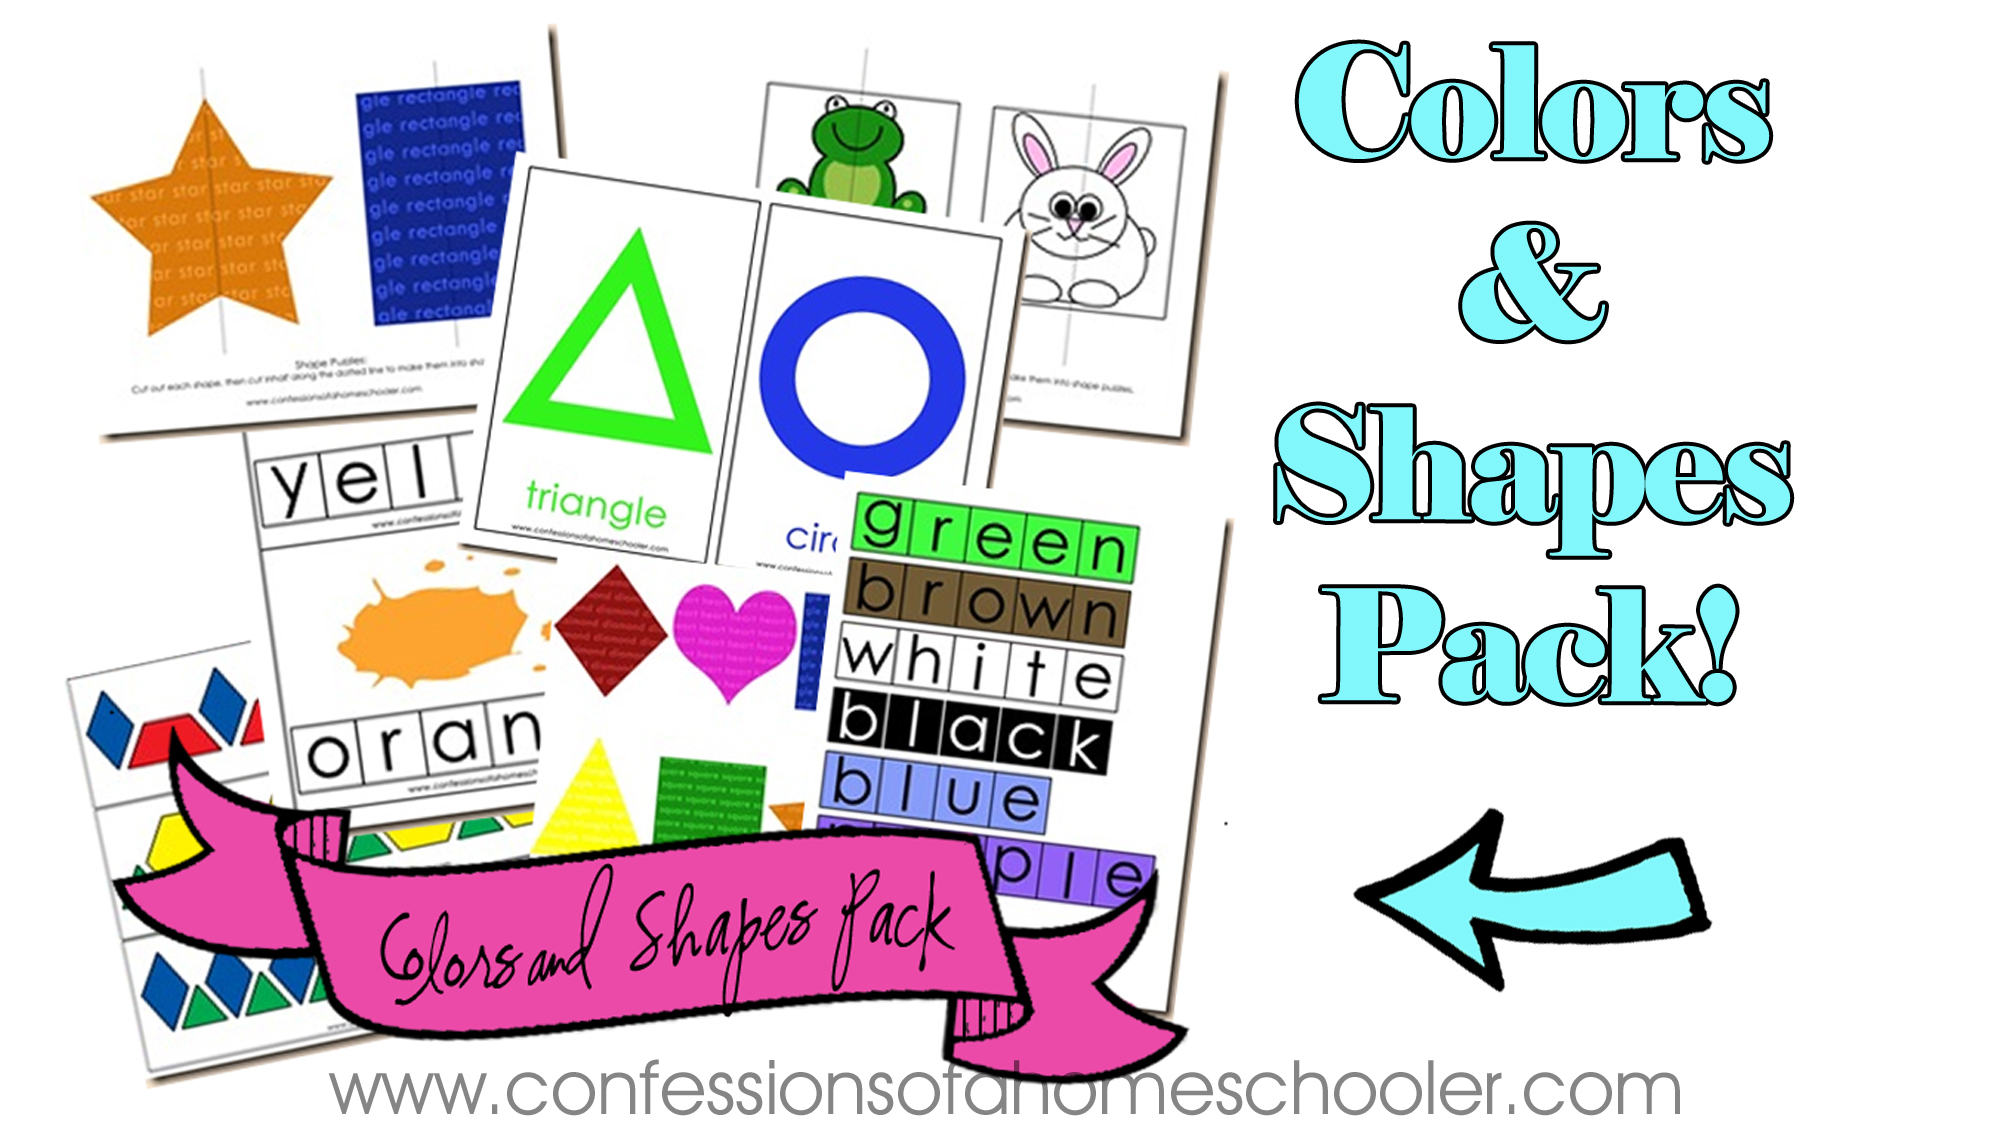 Colors and Shapes Review Pack!